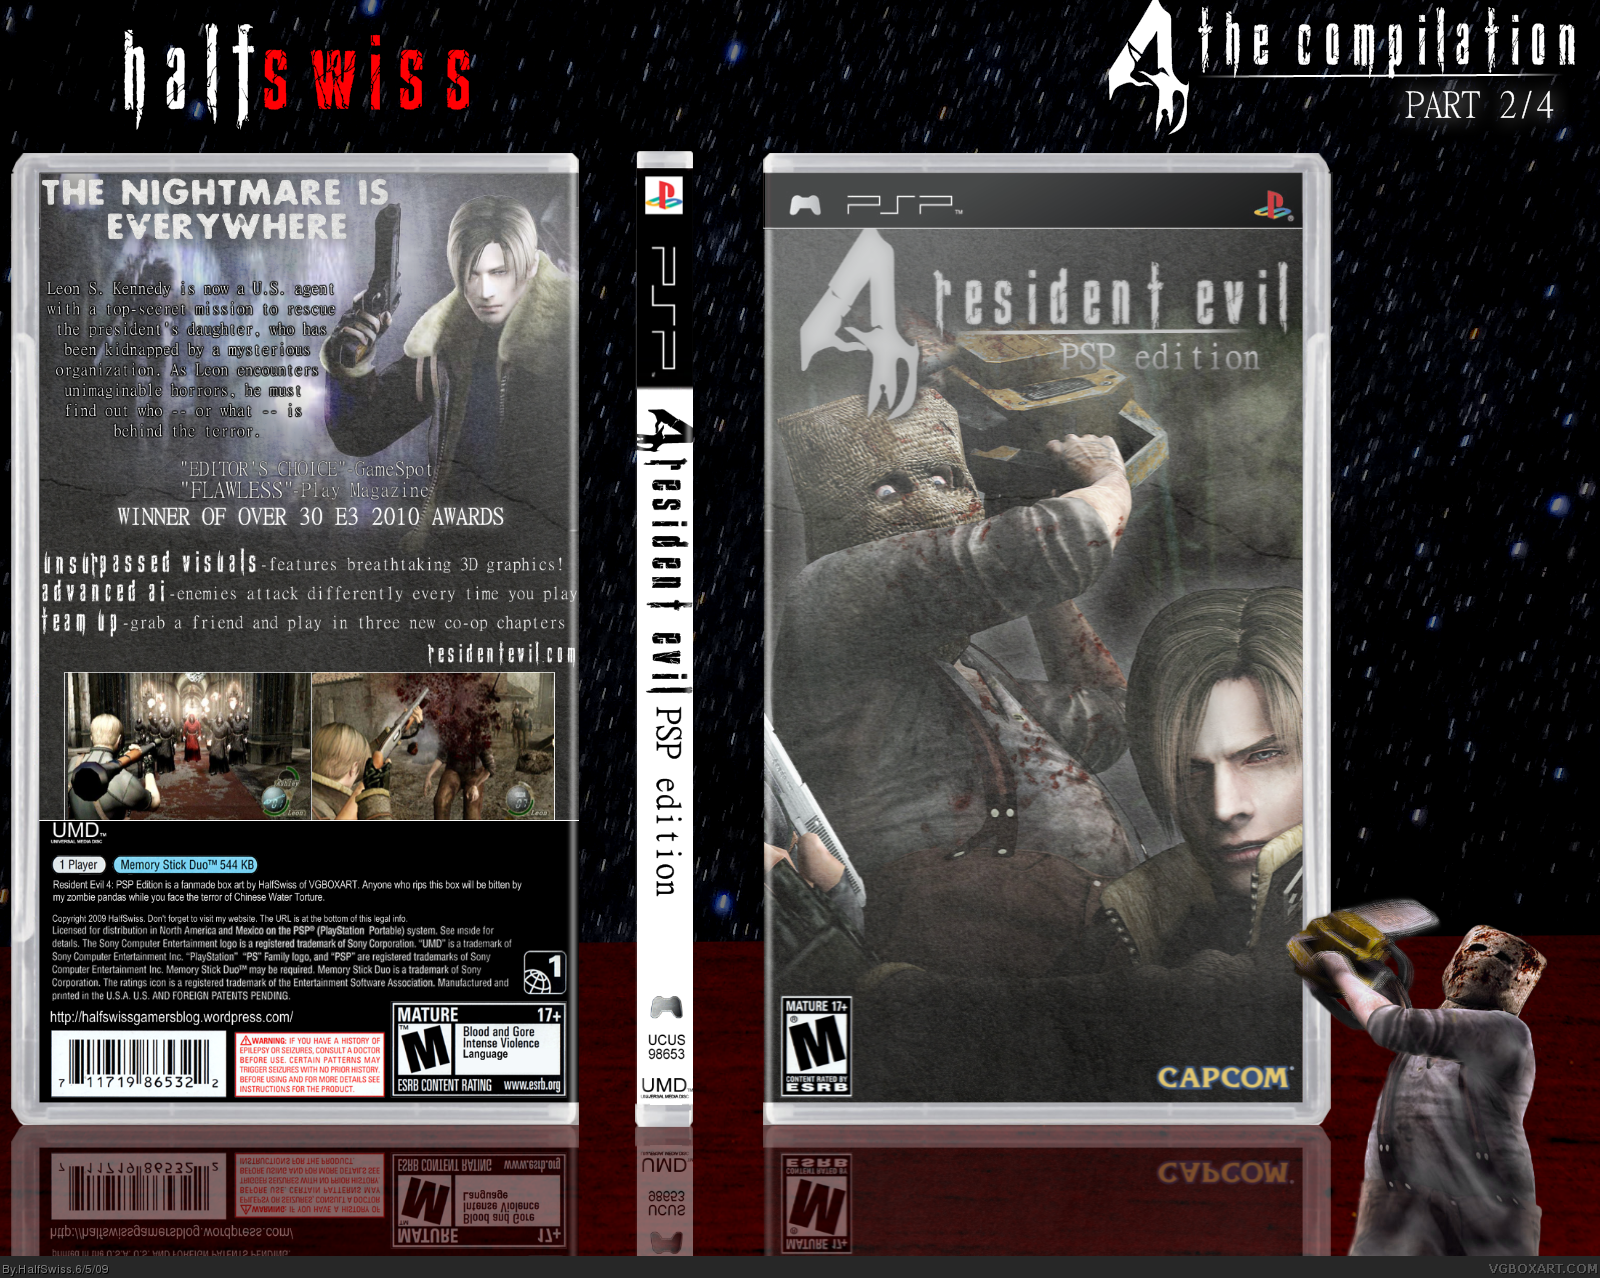 Resident Evil 4: PSP Edition PSP Box Art Cover by HalfSwiss